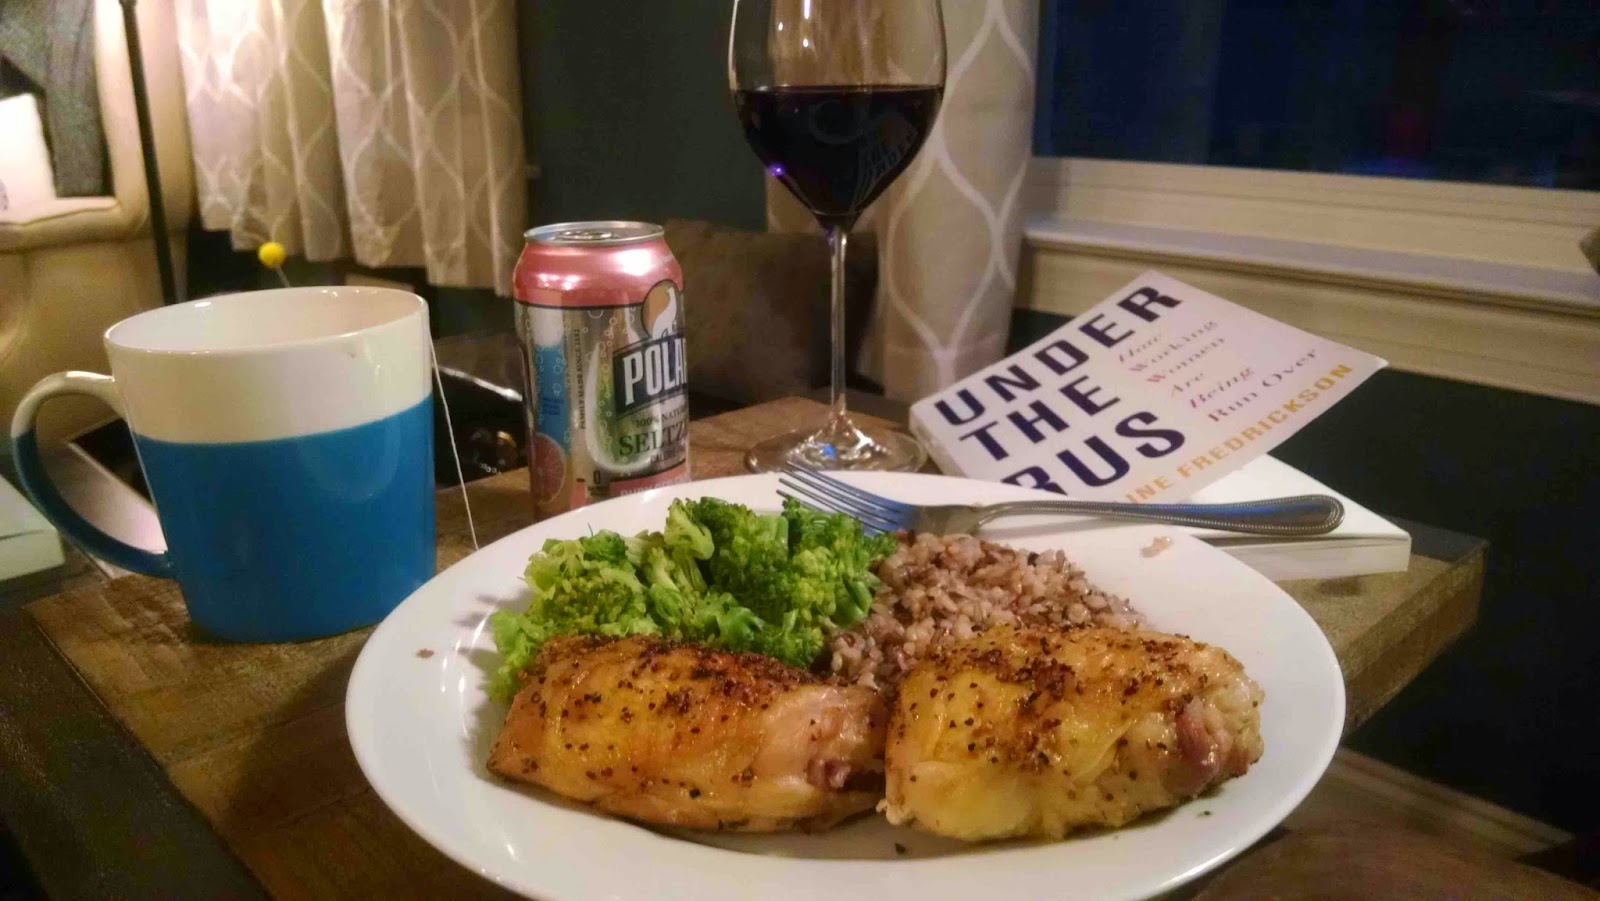 dinner and a book